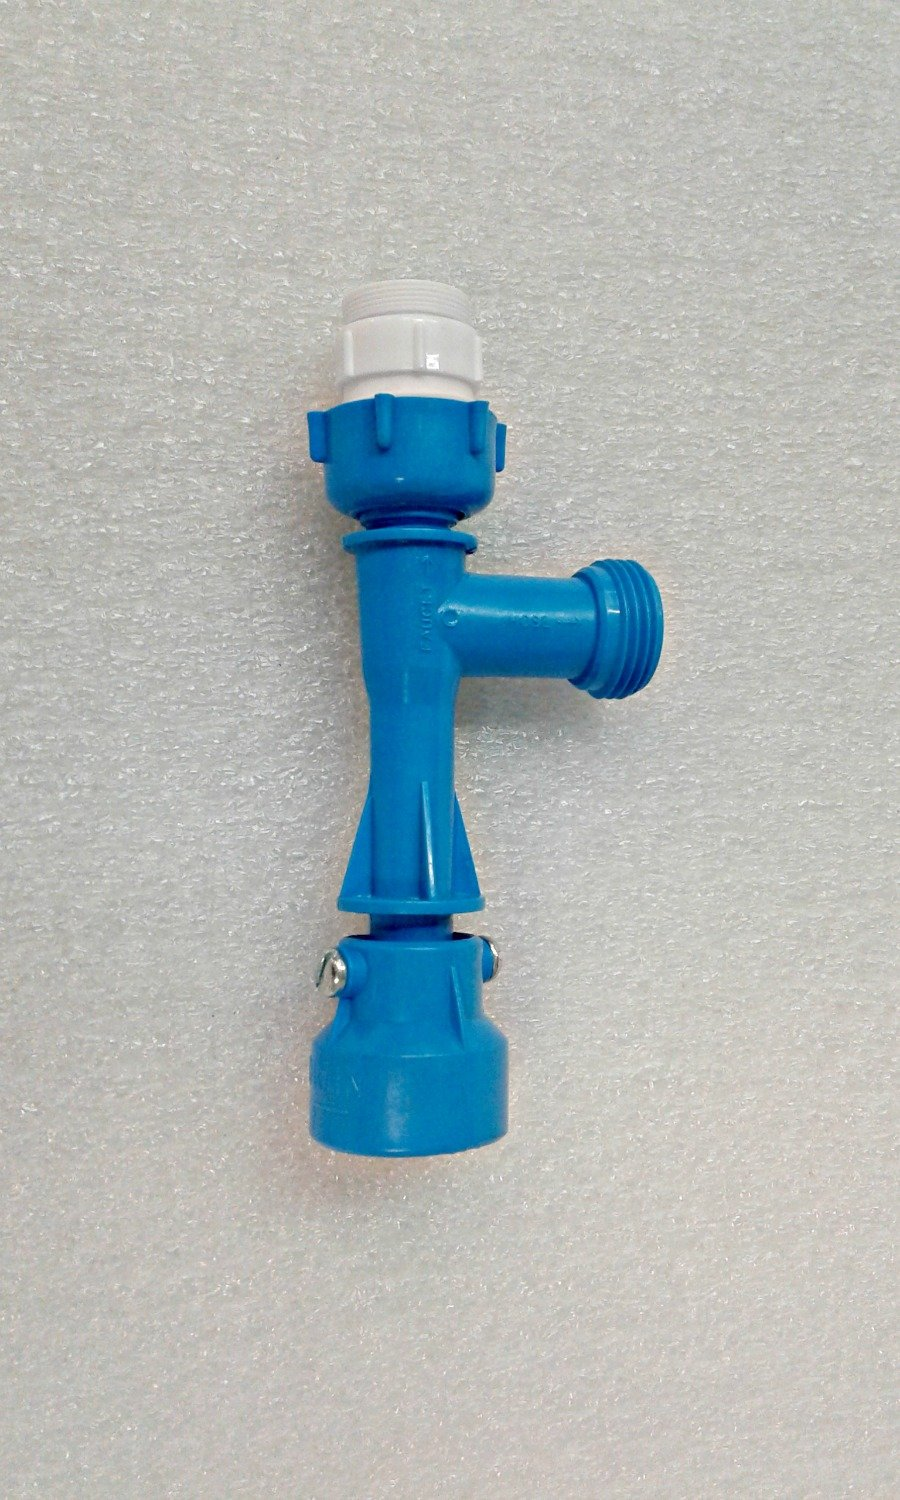 Faucet Adapter - Faucet Aerators And Adapters - Amazon.com